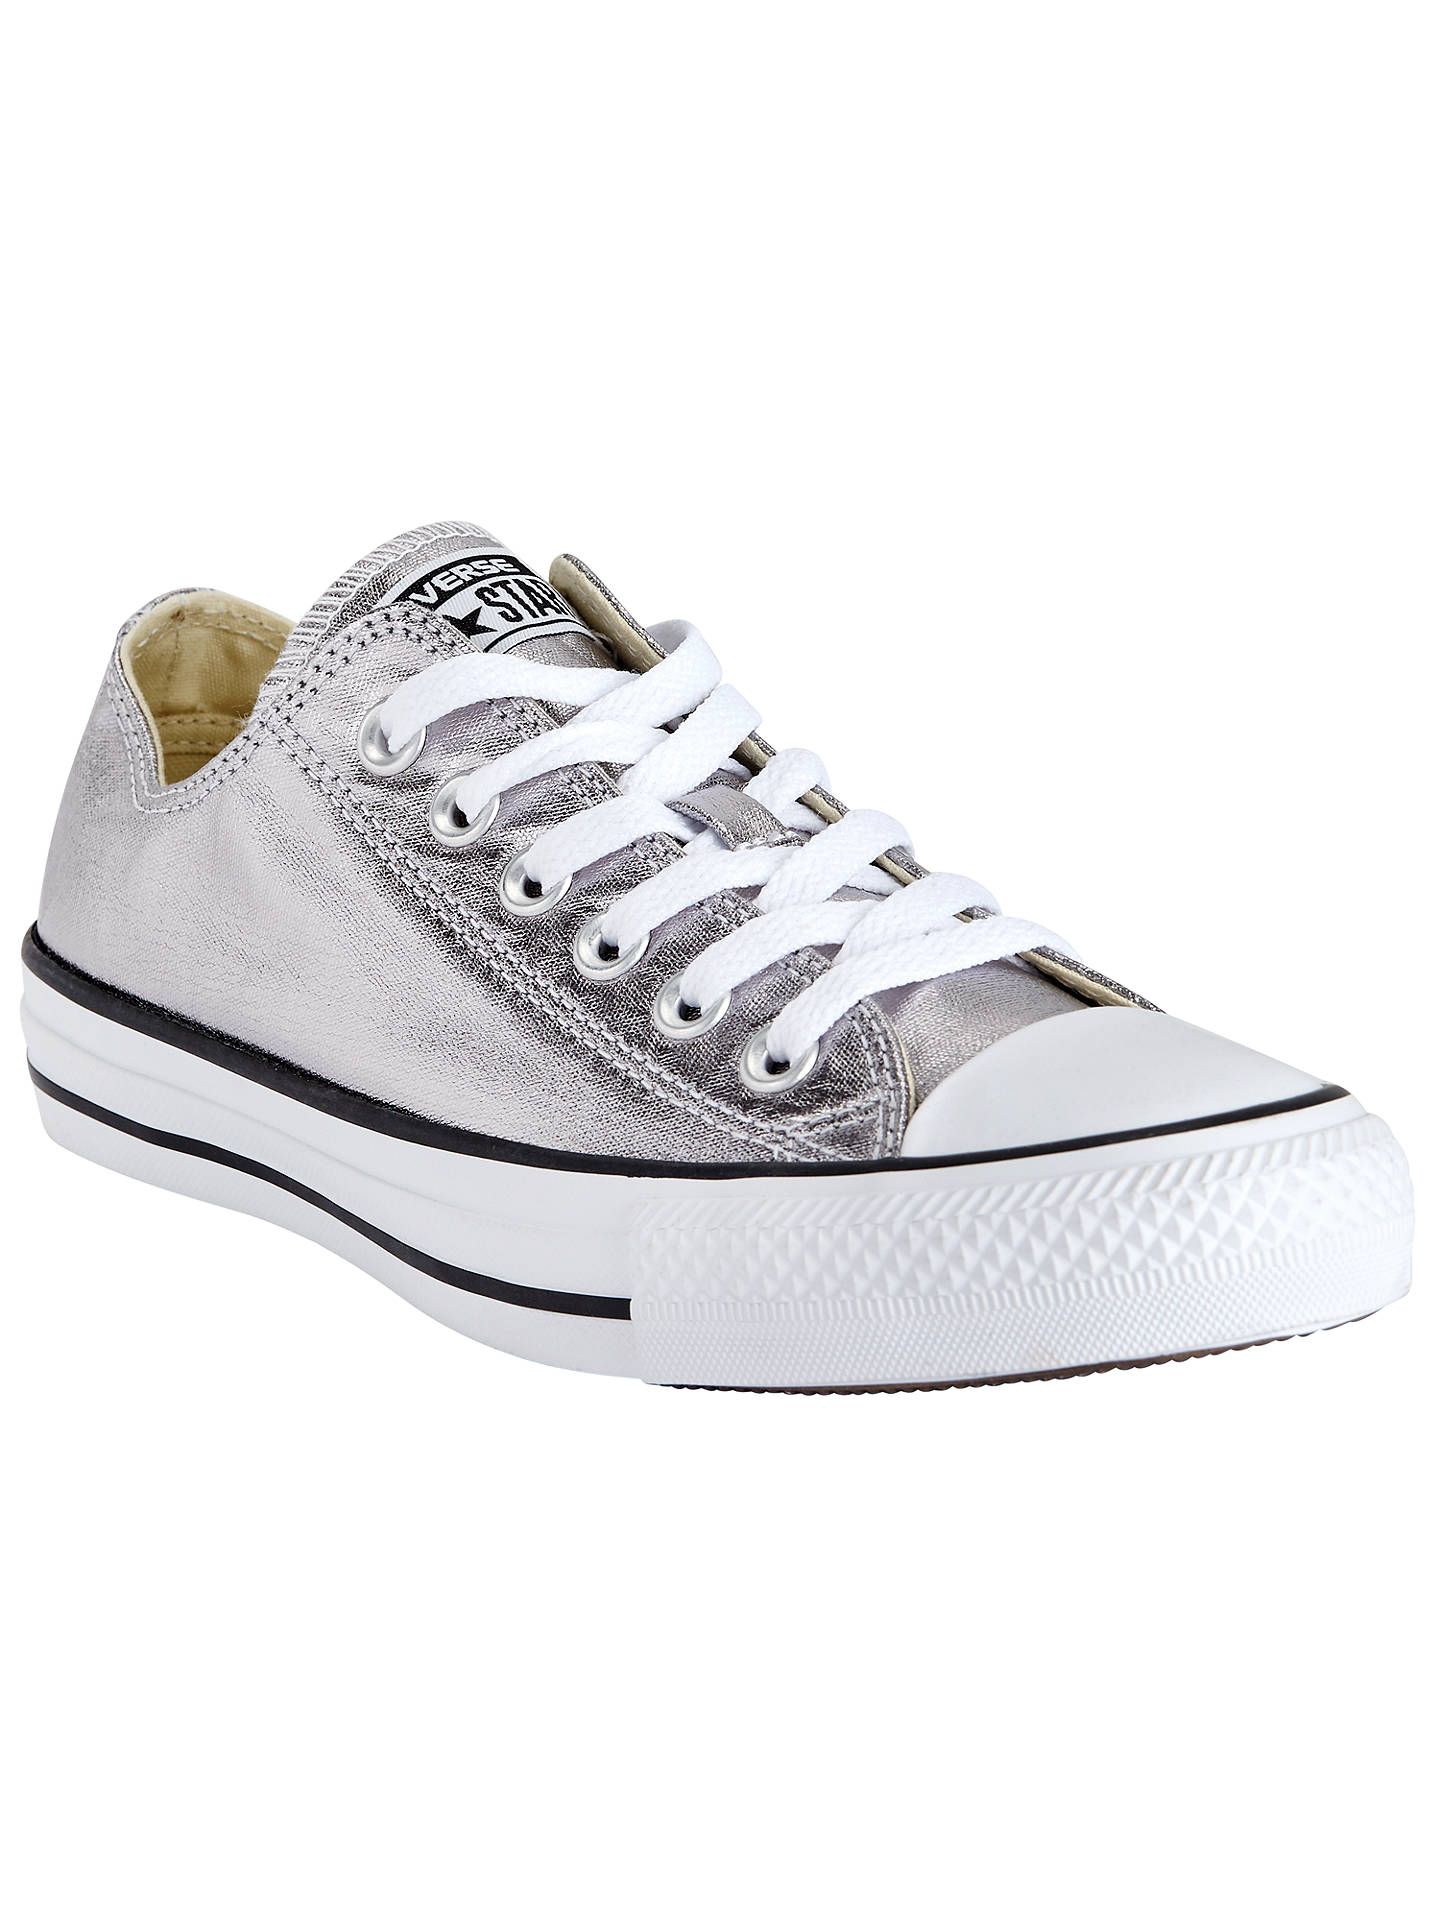 0ee1212c0635 Converse Chuck Taylor All Star Ox Canvas Trainers at John Lewis ...